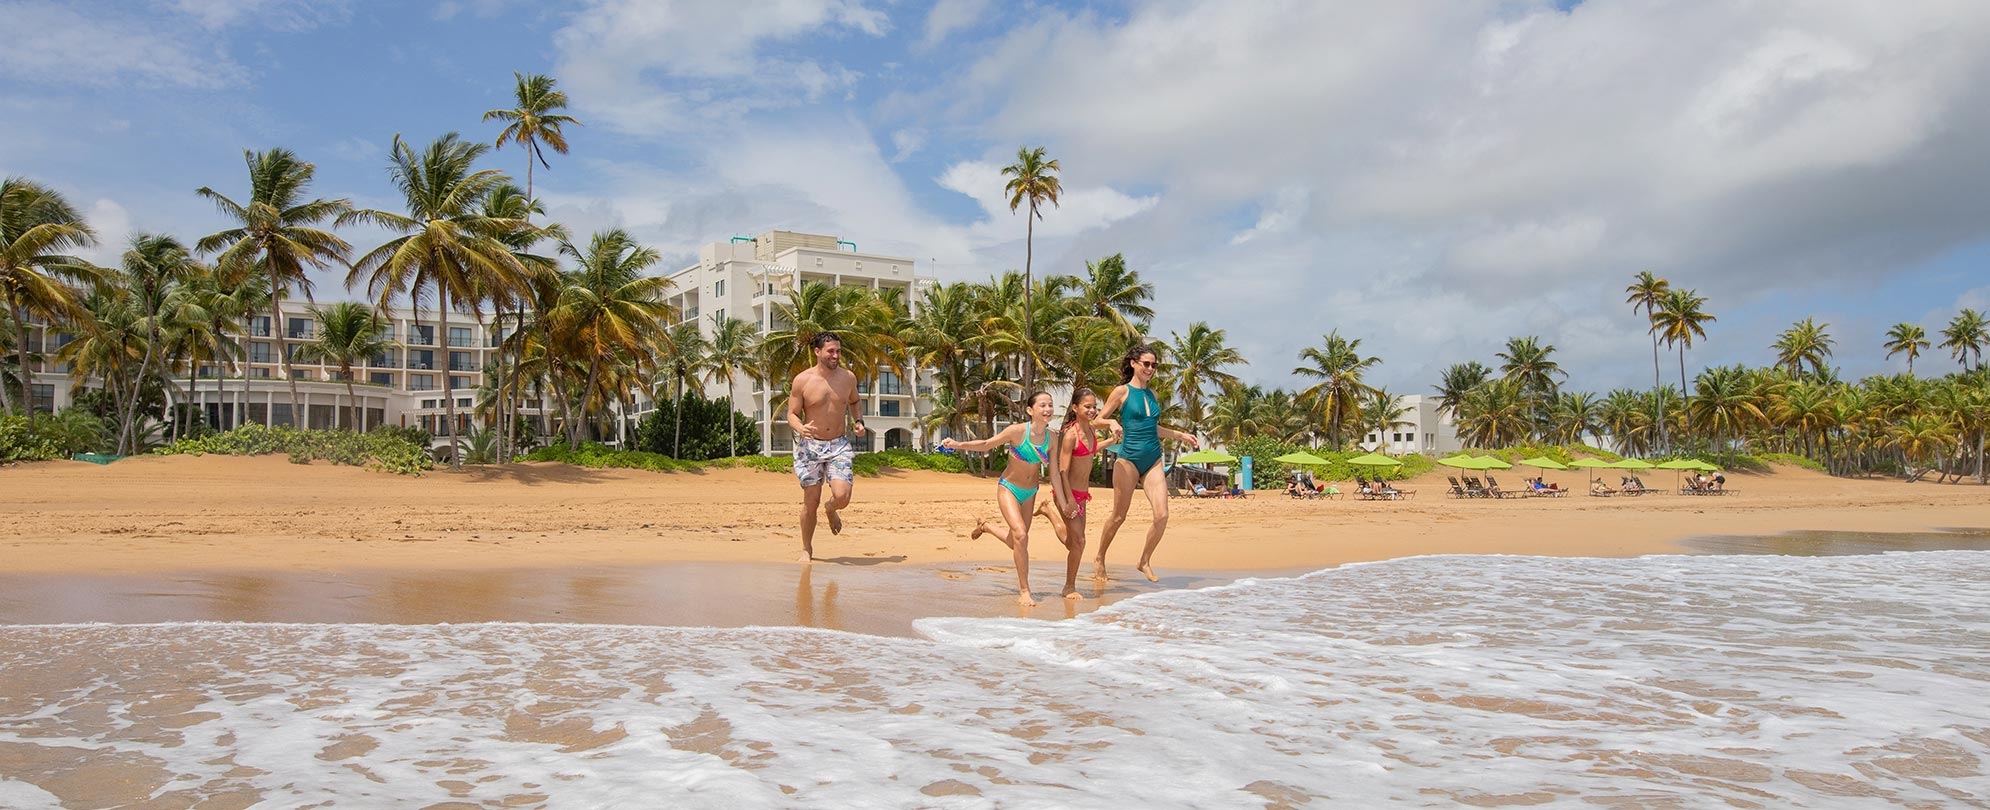 Mom, dad, and two young daughters running into the ocean on vacation at Margaritaville Vacation Club by Wyndham - Rio Mar.